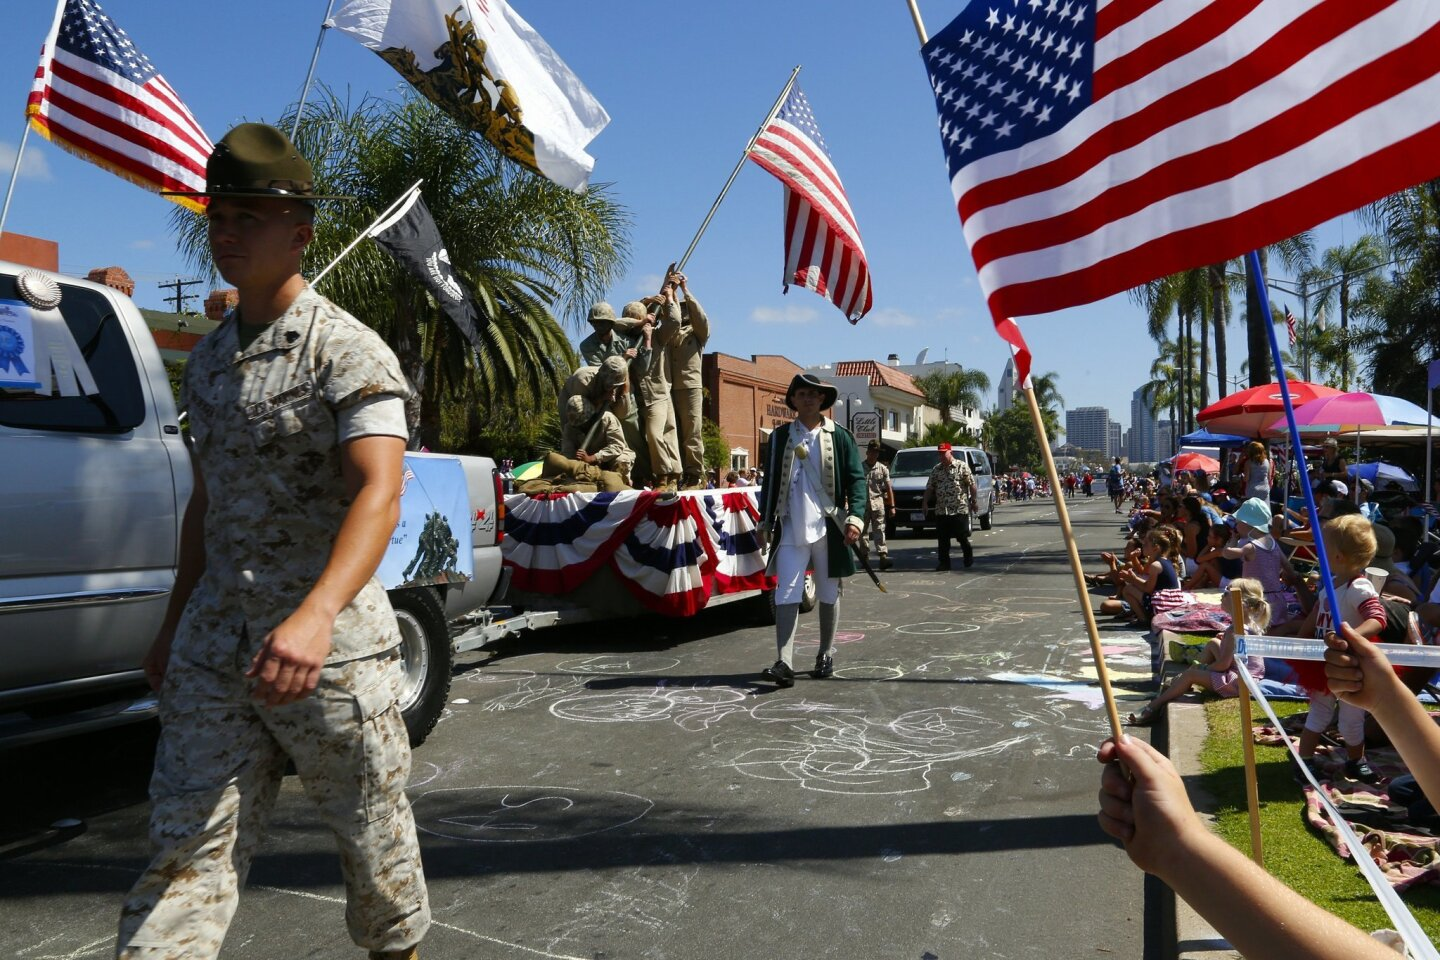 Coronado's Fourth of July parade